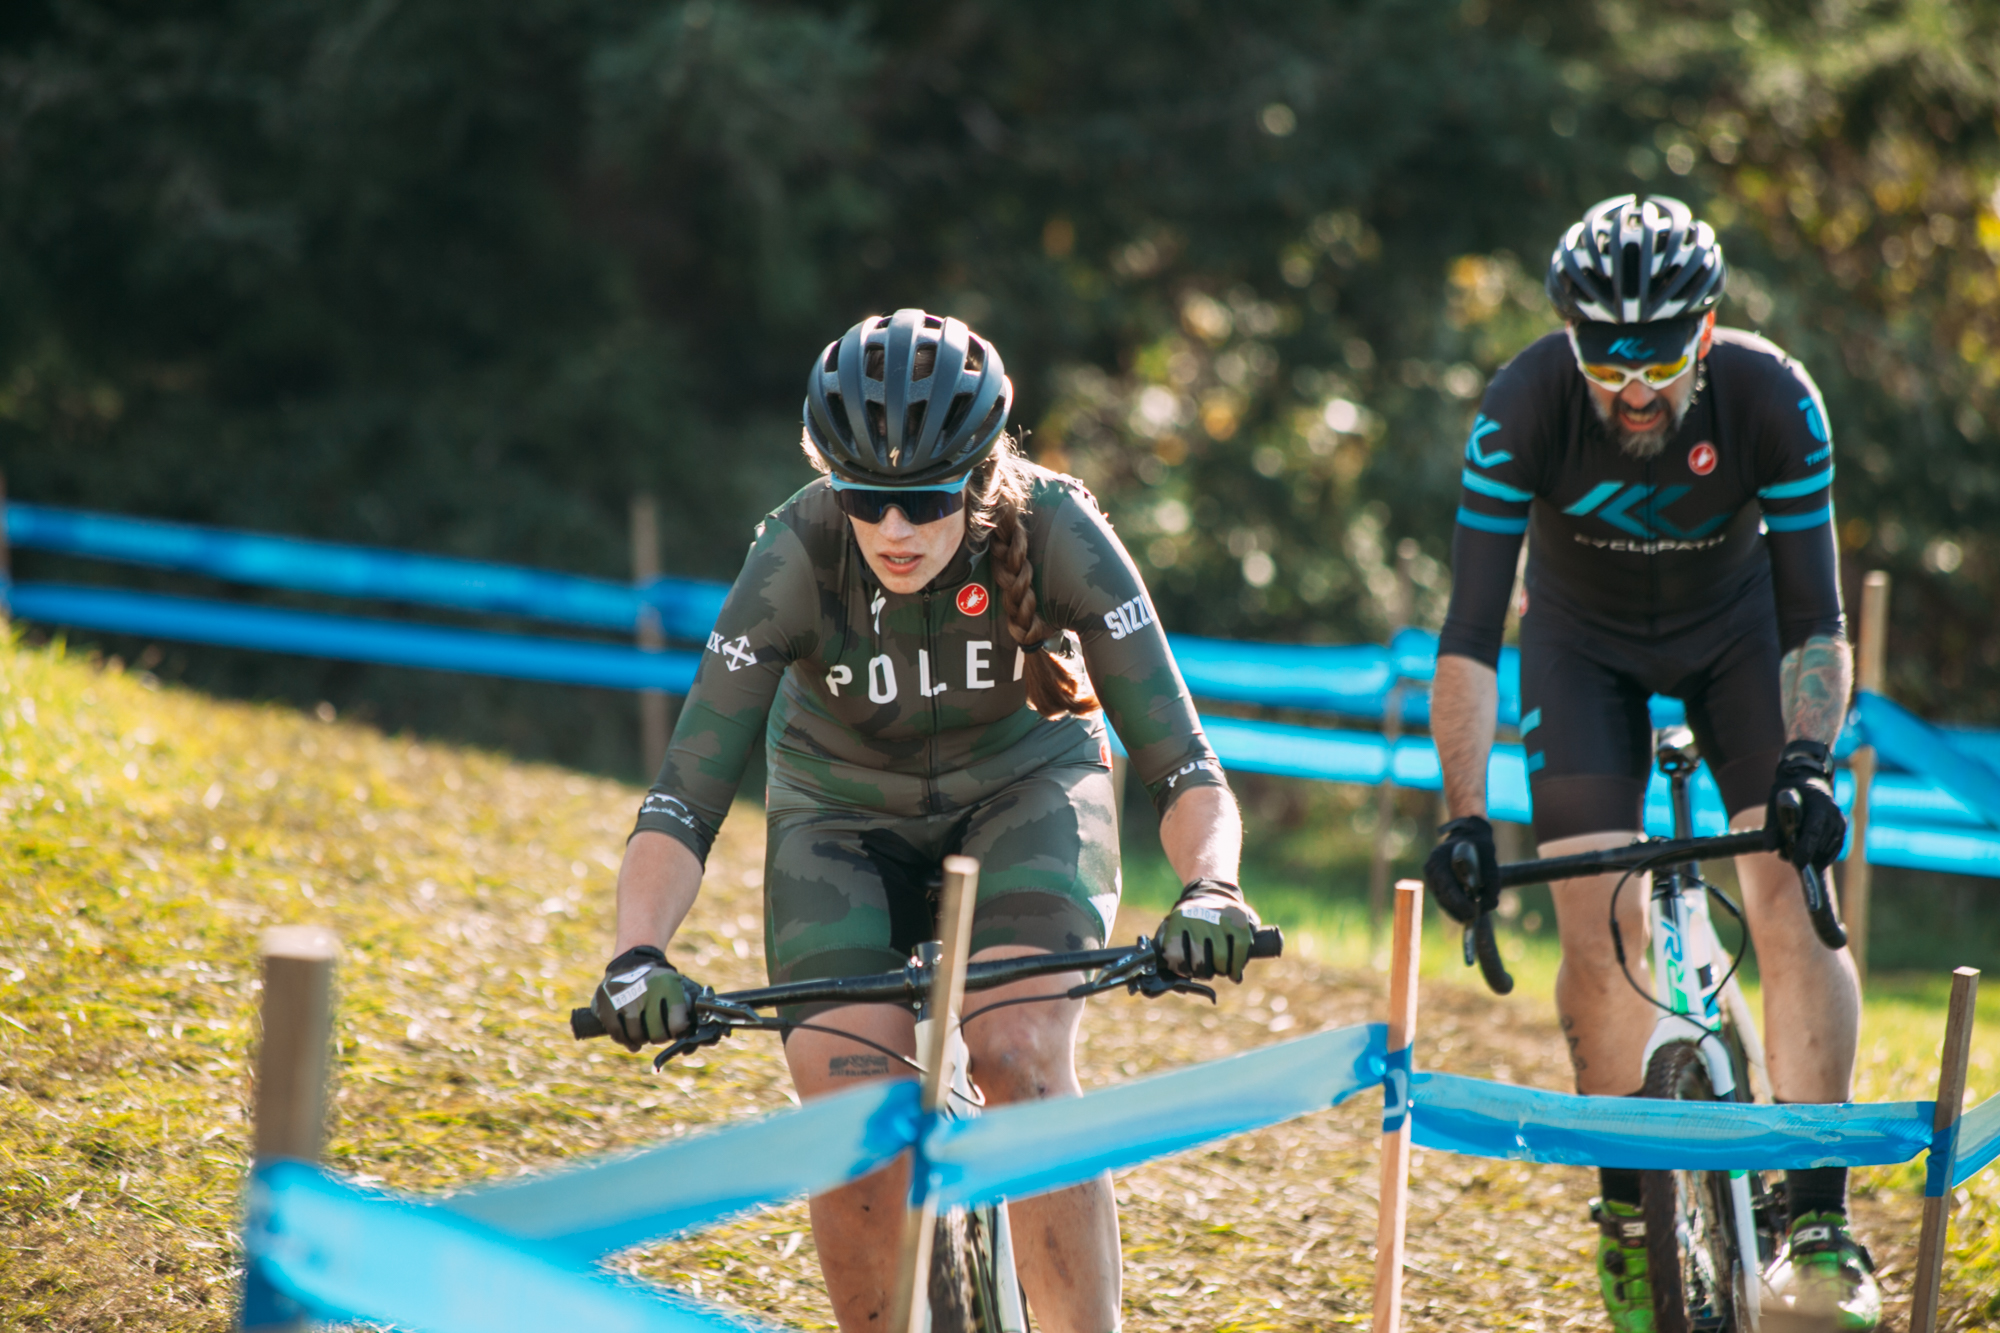 Cyclocross18_CCCX_RainierHS-112-mettlecycling.jpg